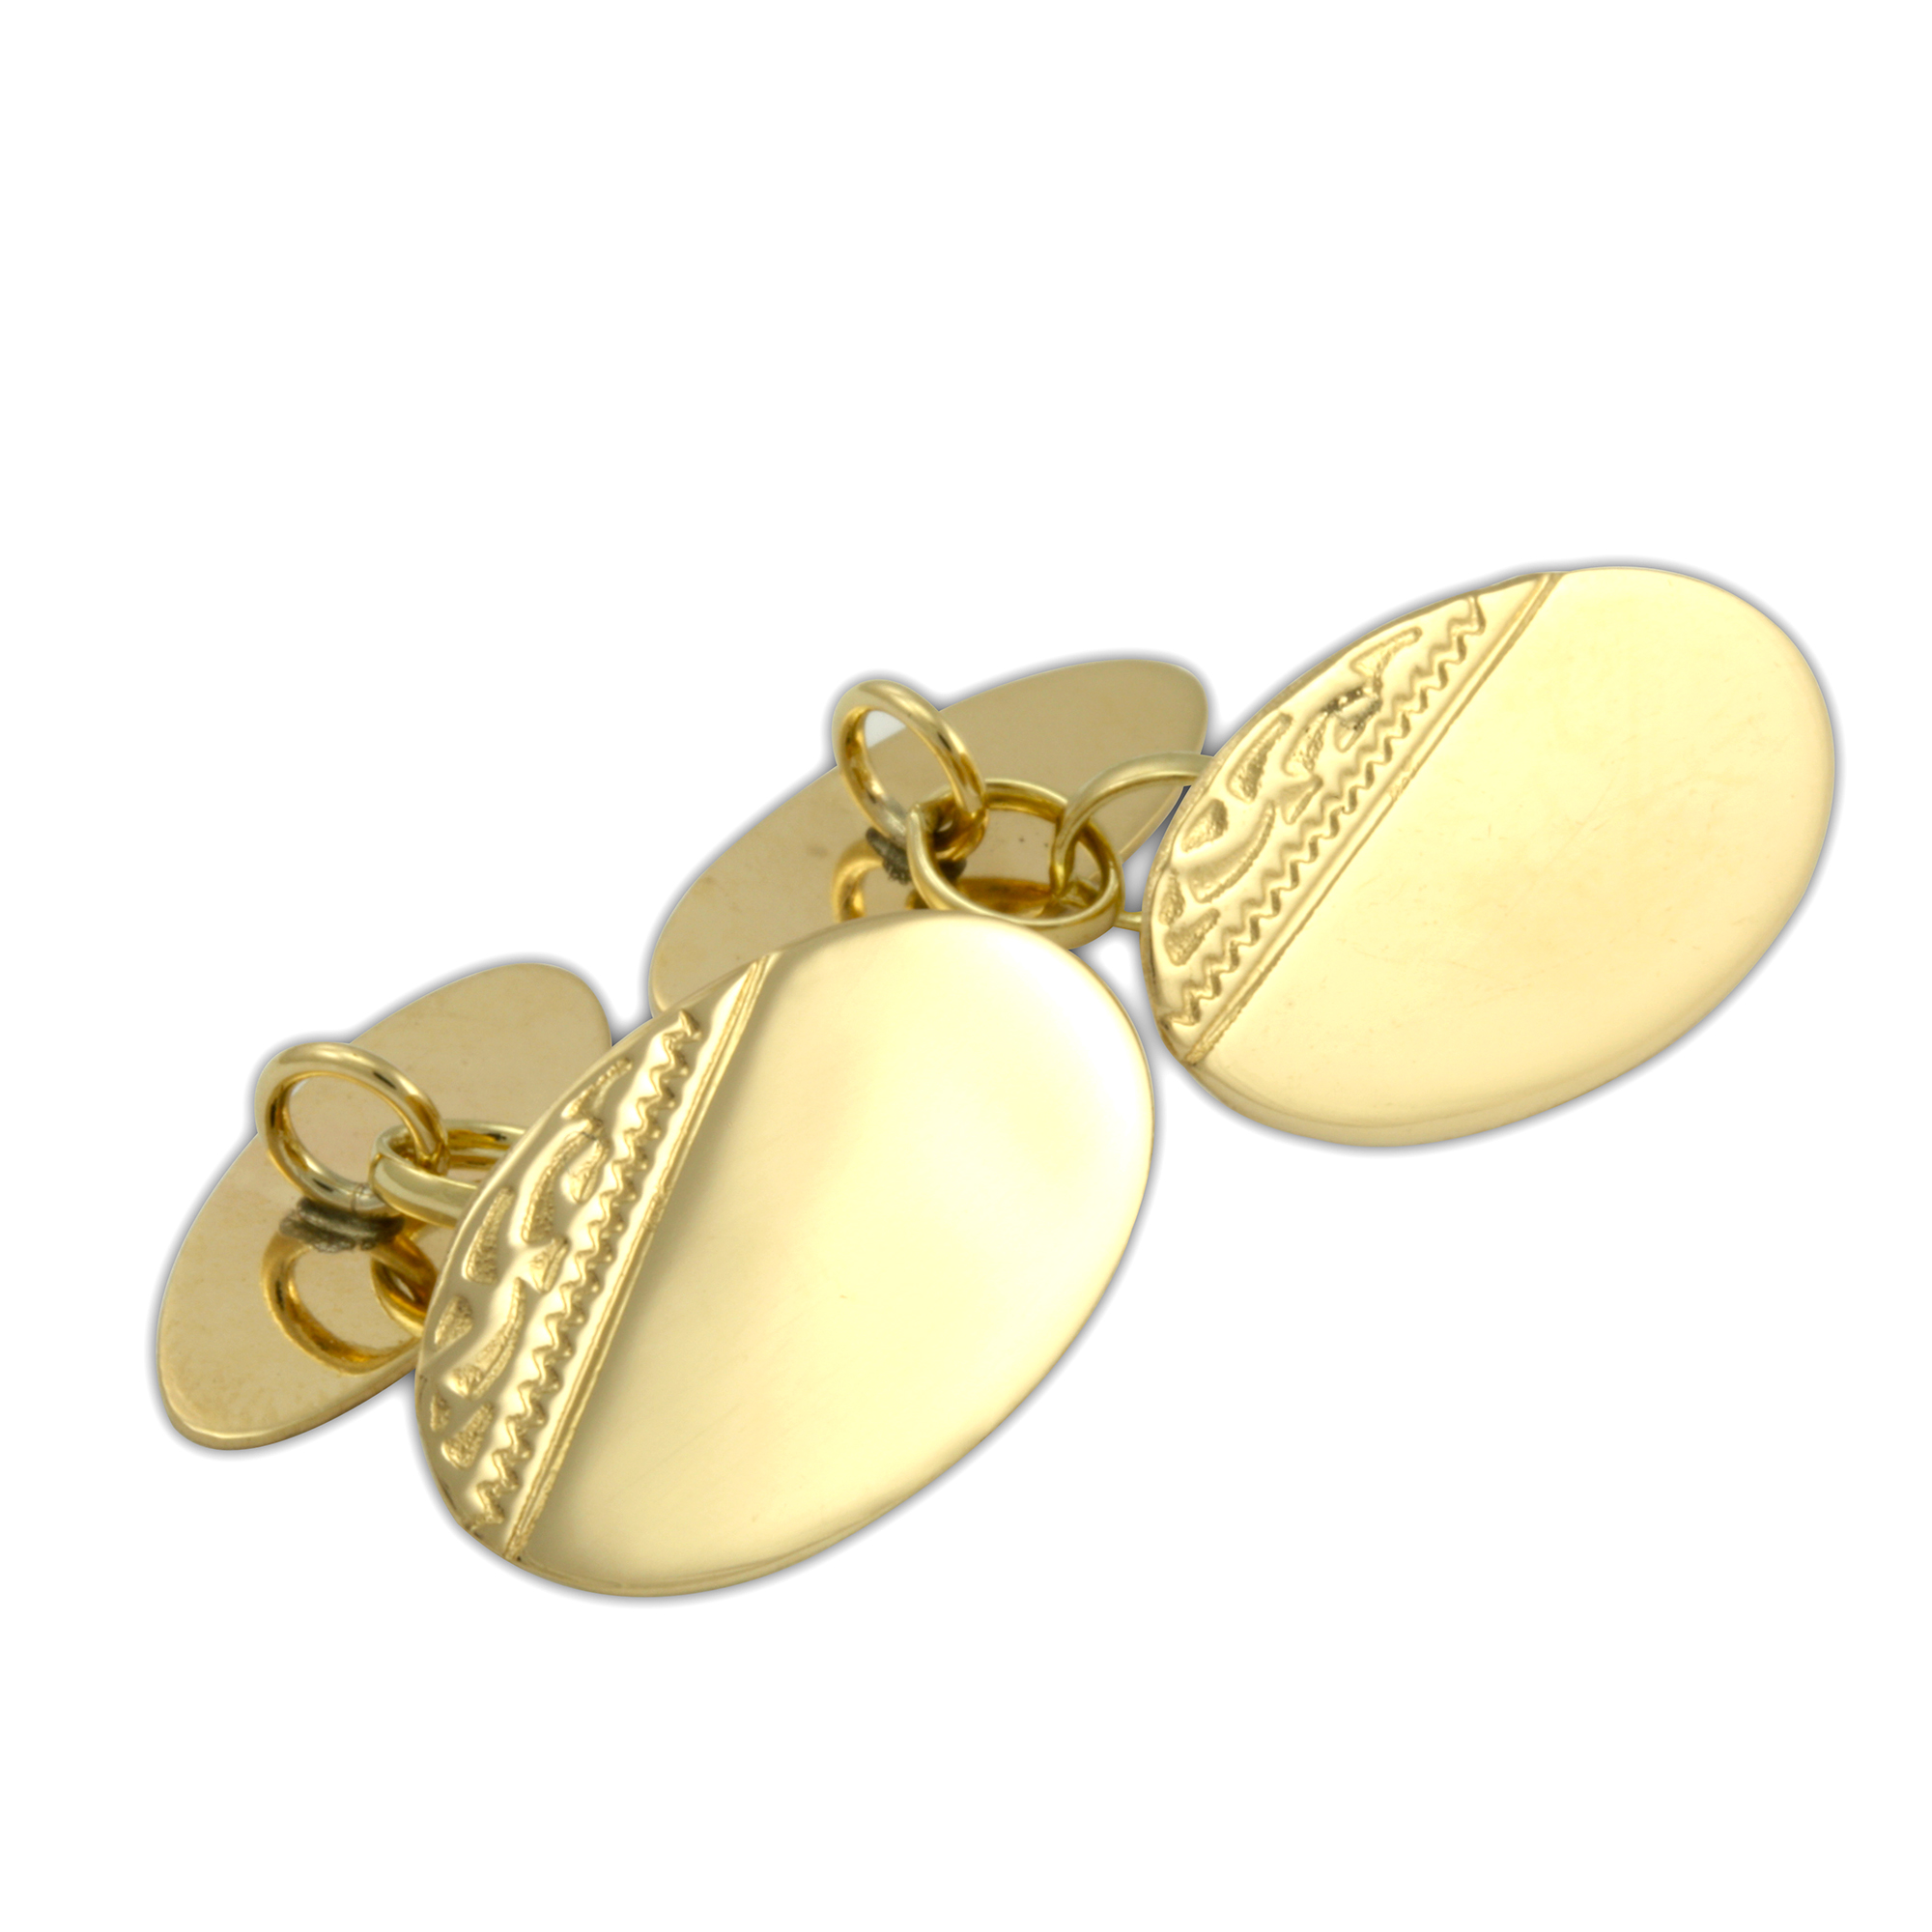 An image of 9ct Gold Engraved Oval Cufflinks